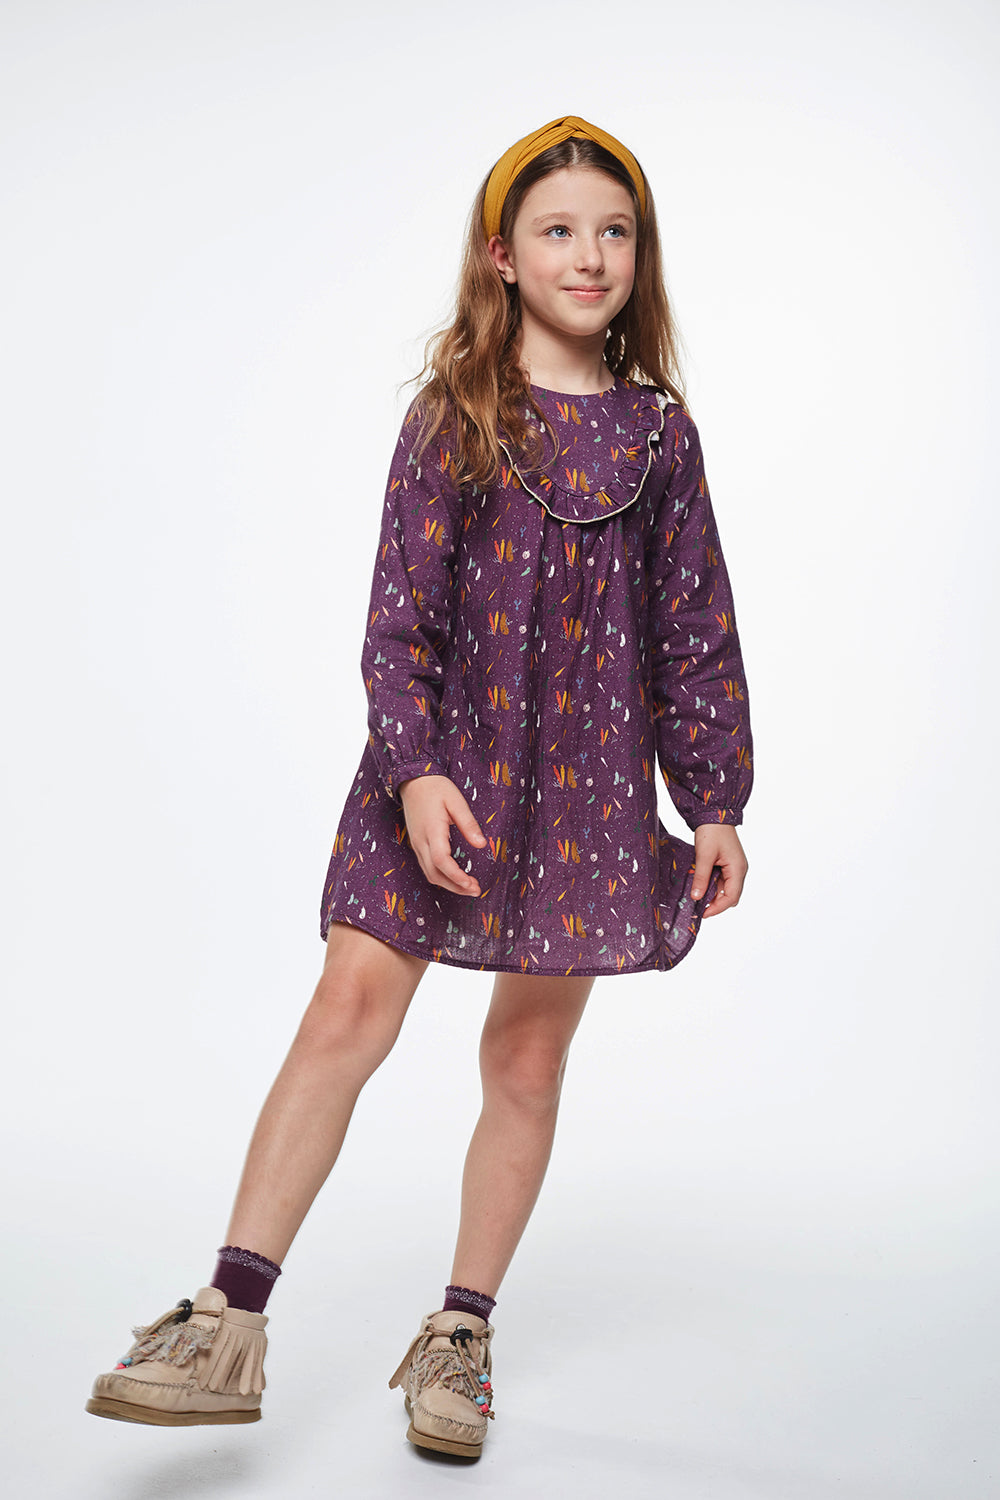 Load image into Gallery viewer, Coco Au Lait BURGUNDY PRINTED DRESS Dress Prune Purple